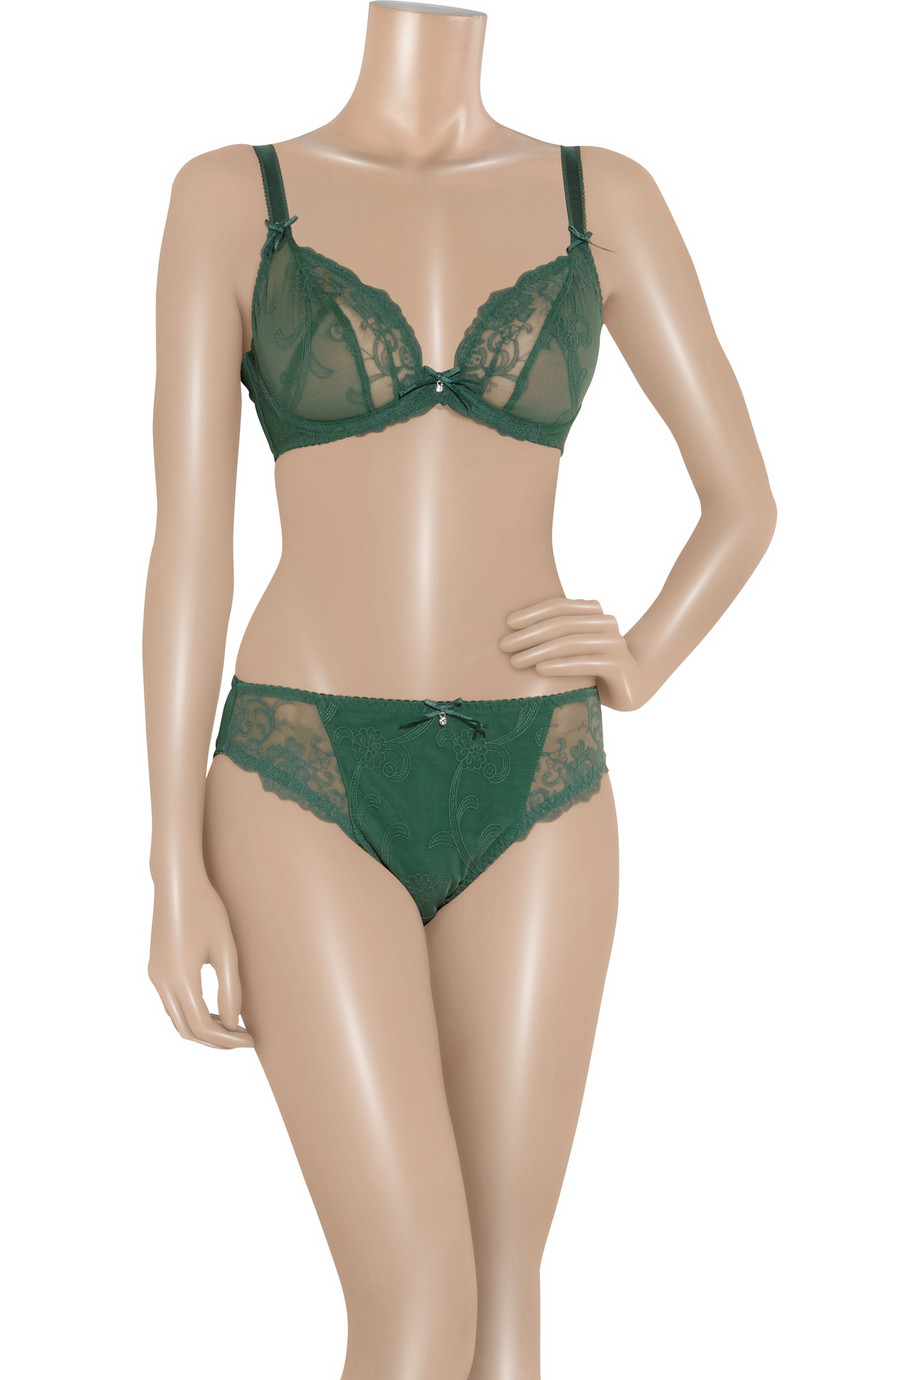 c97457926b Lyst - Rigby   Peller Embroidered Lace Underwired Bra in Green